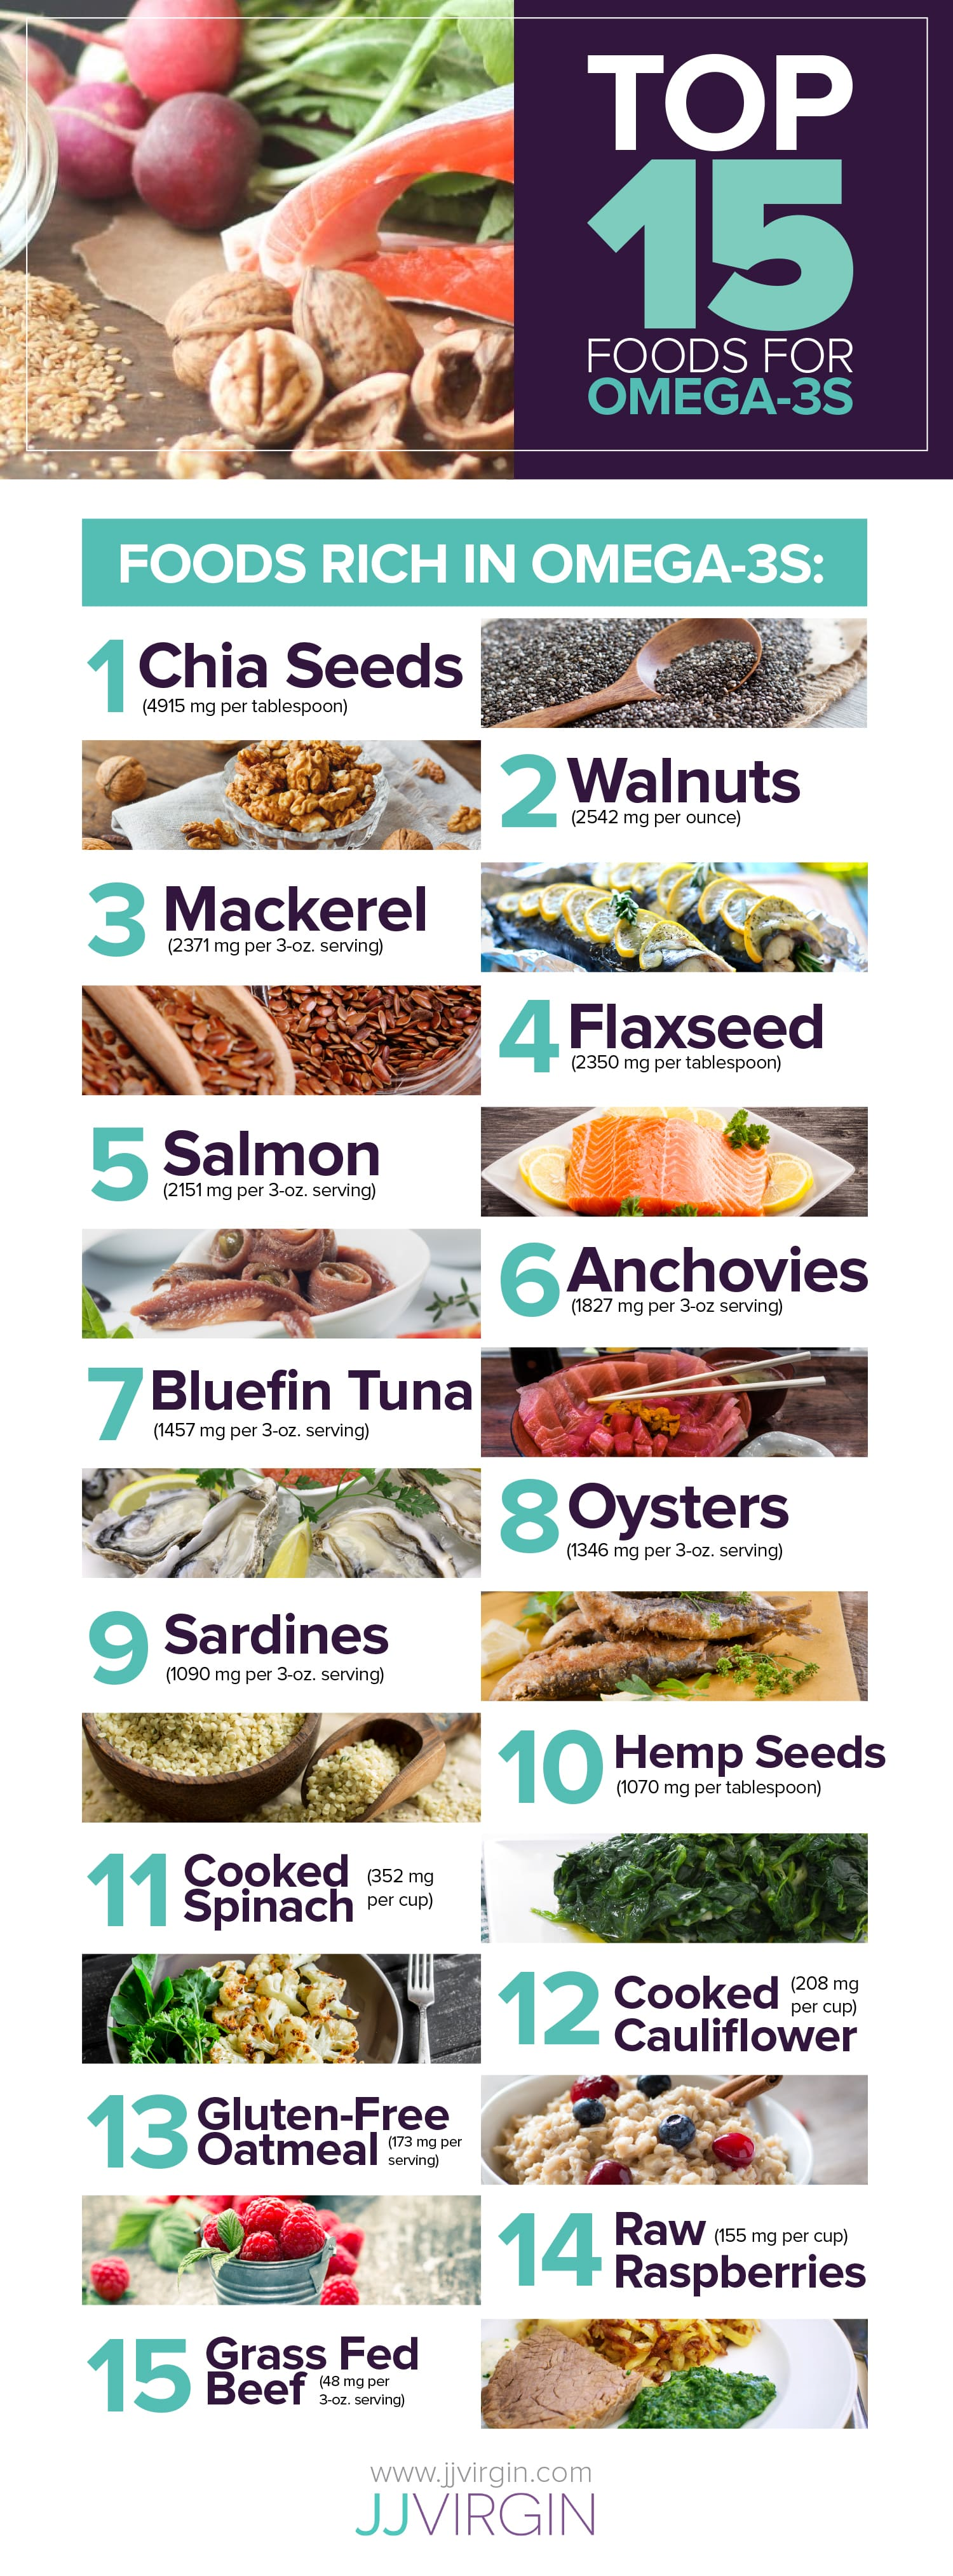 top-15-foods-for-omega-3s-min